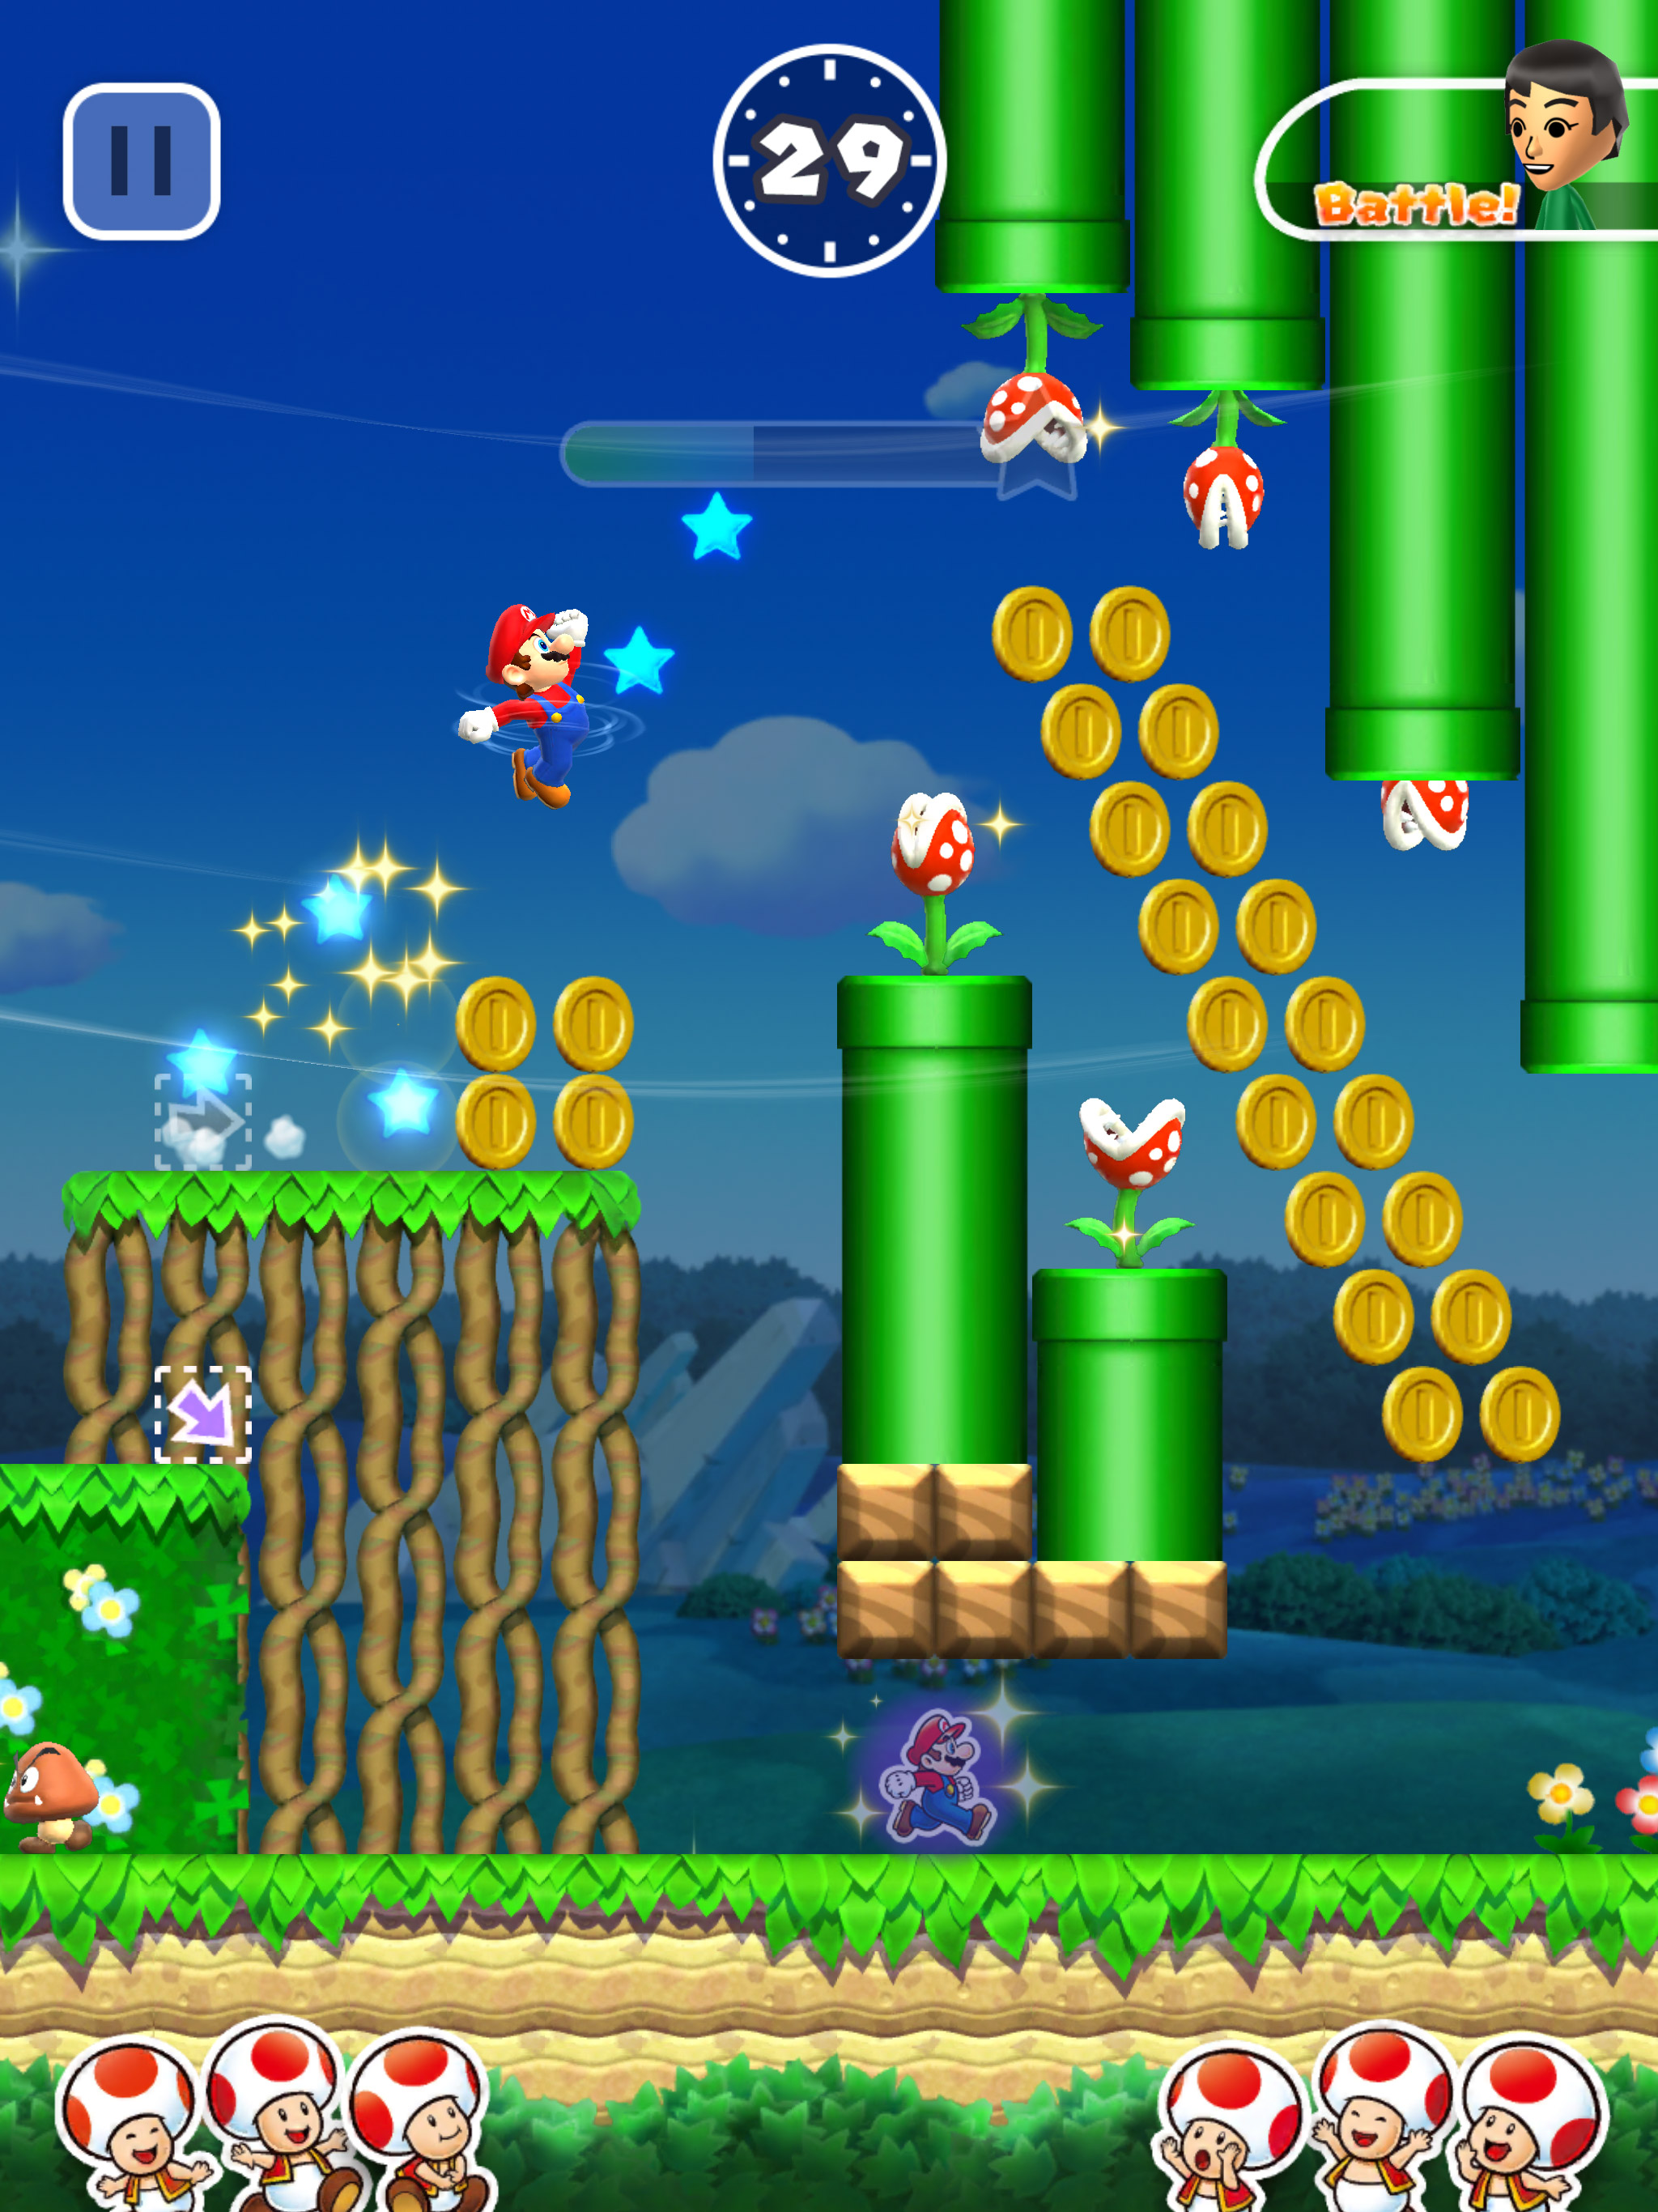 Super Mario Run now available for Android (update)